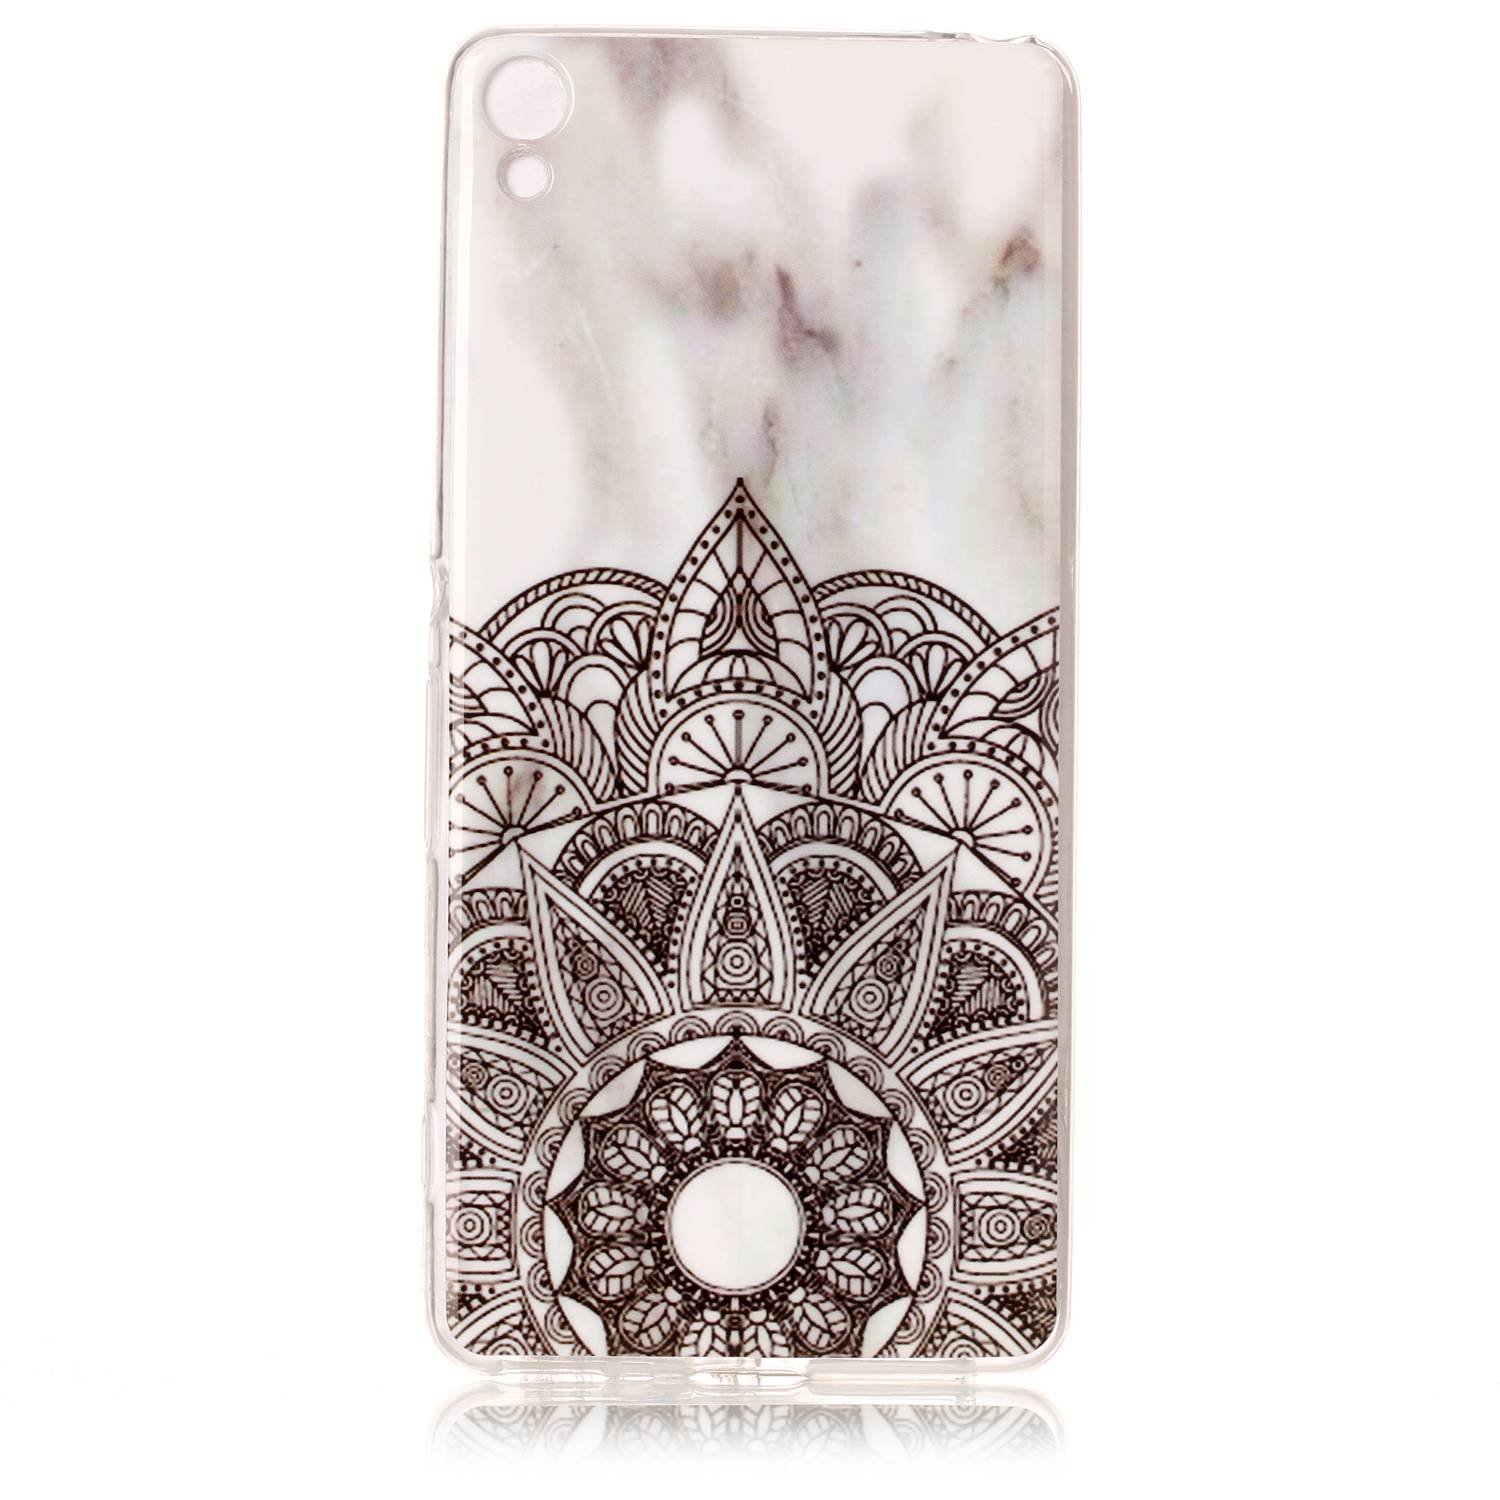 NEXCURIO Sony Xperia XA Case Marble Soft Silicone Shockproof Scratch Resistant Protective Cover for Sony Xperia XA - YHU102332 #1